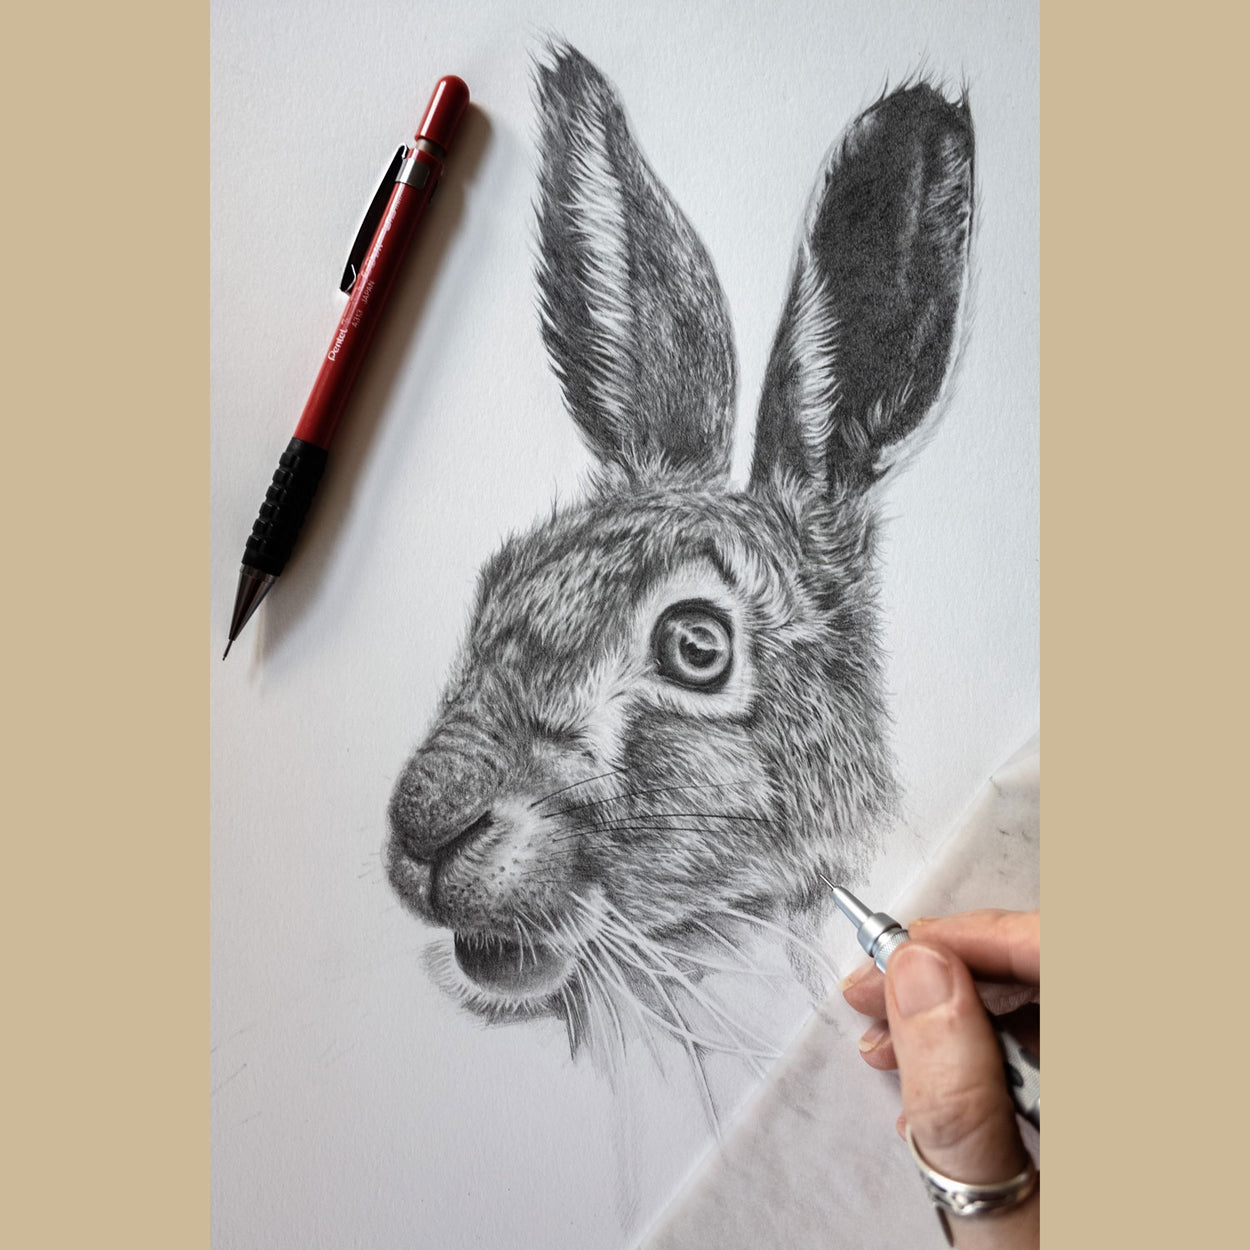 Hare Pencil Drawing in Progress - The Thriving Wild - Jill Dimond